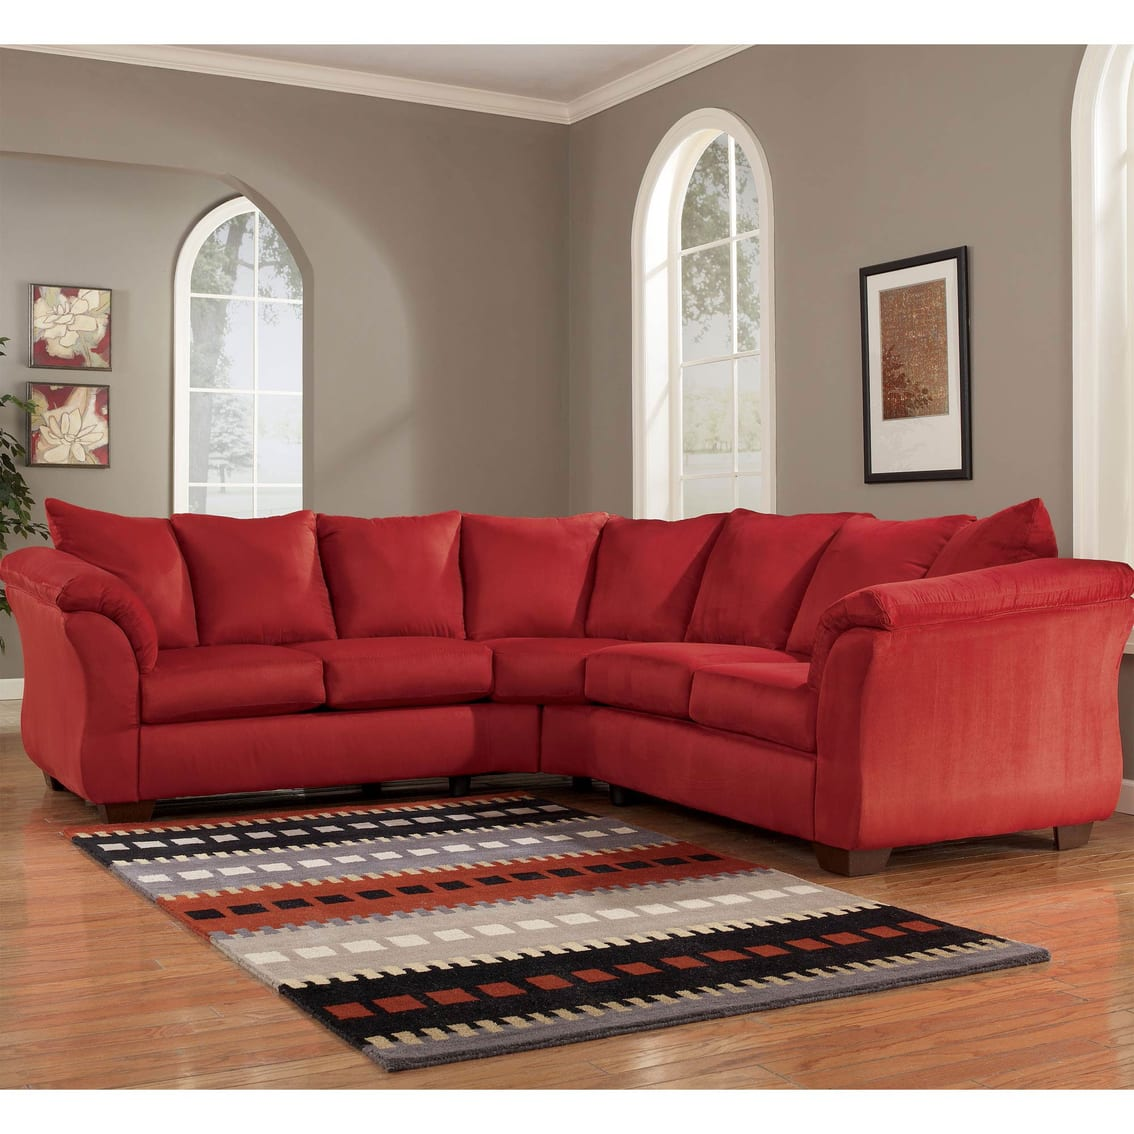 Militay only AAFES sectional Sofa $199.99 free shipping